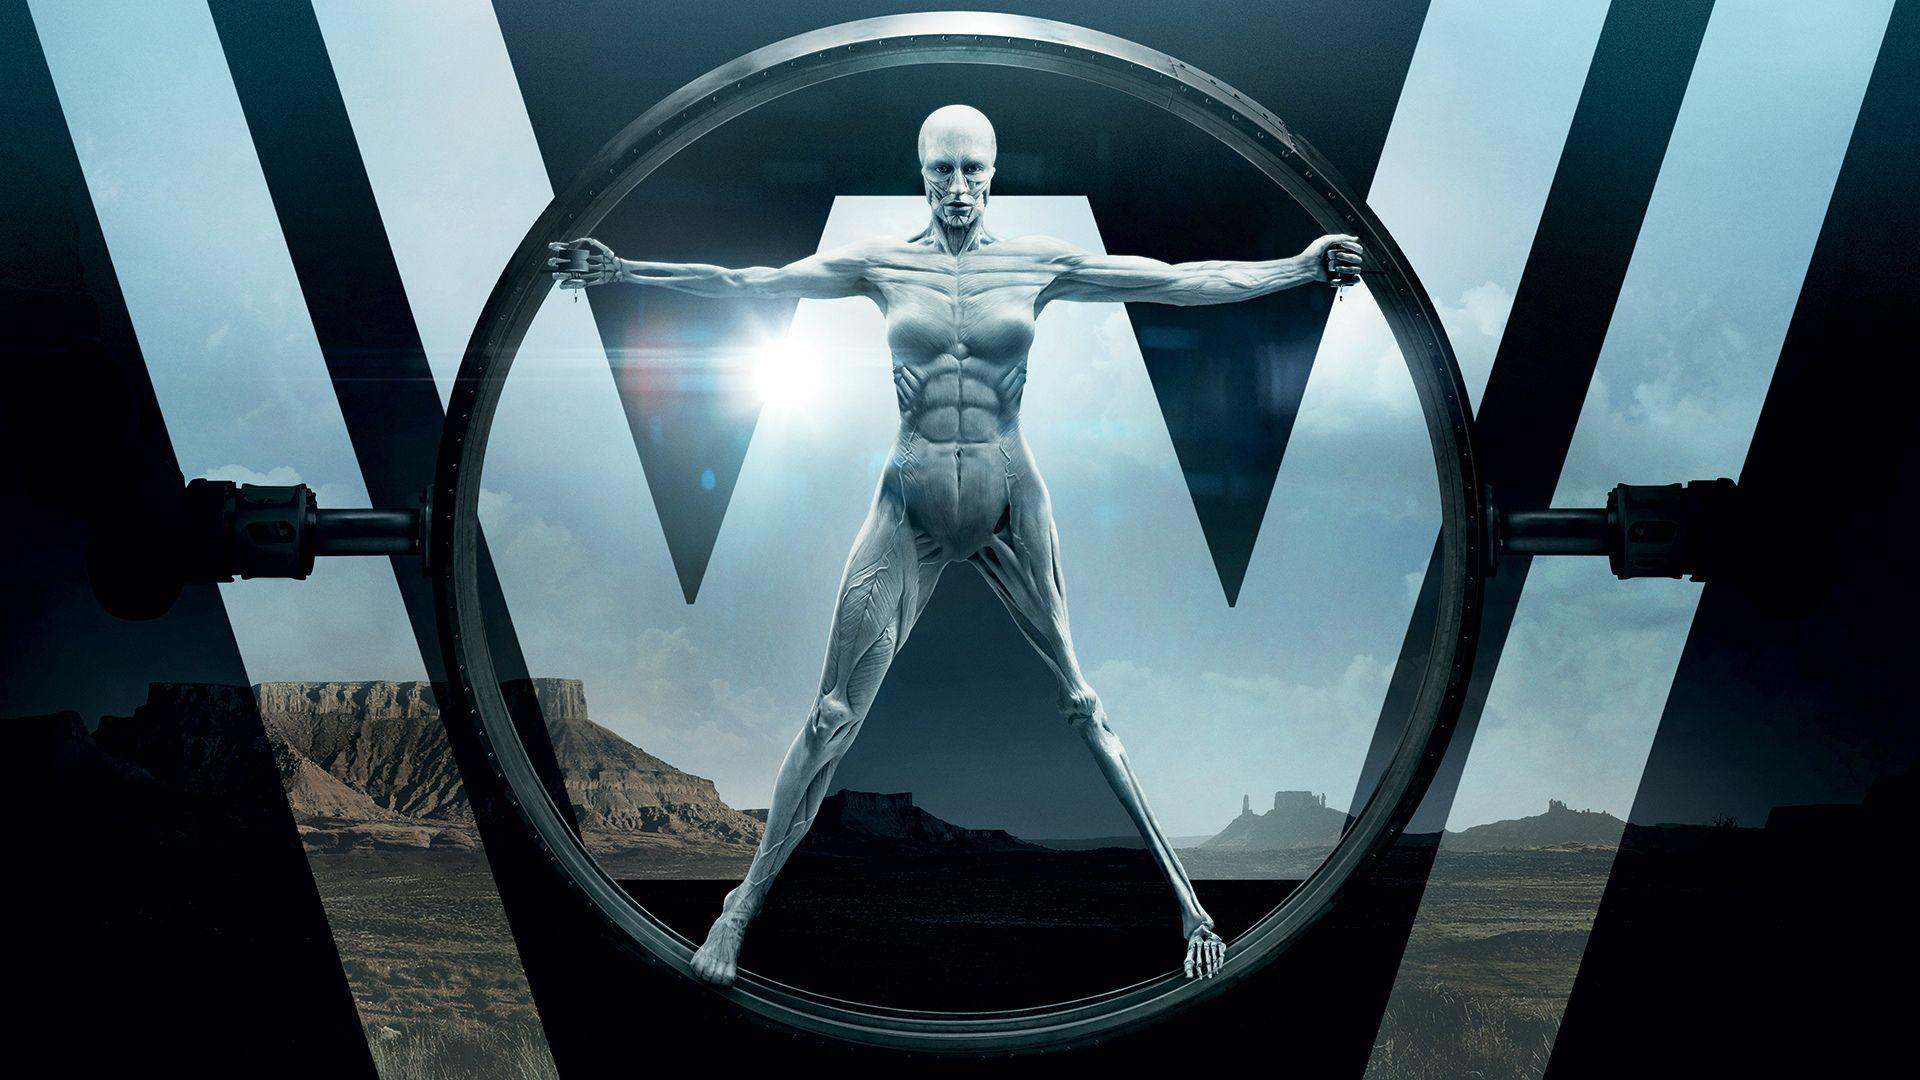 Westworld Wallpaper Backgrounds HD 58703 3900x2600 px